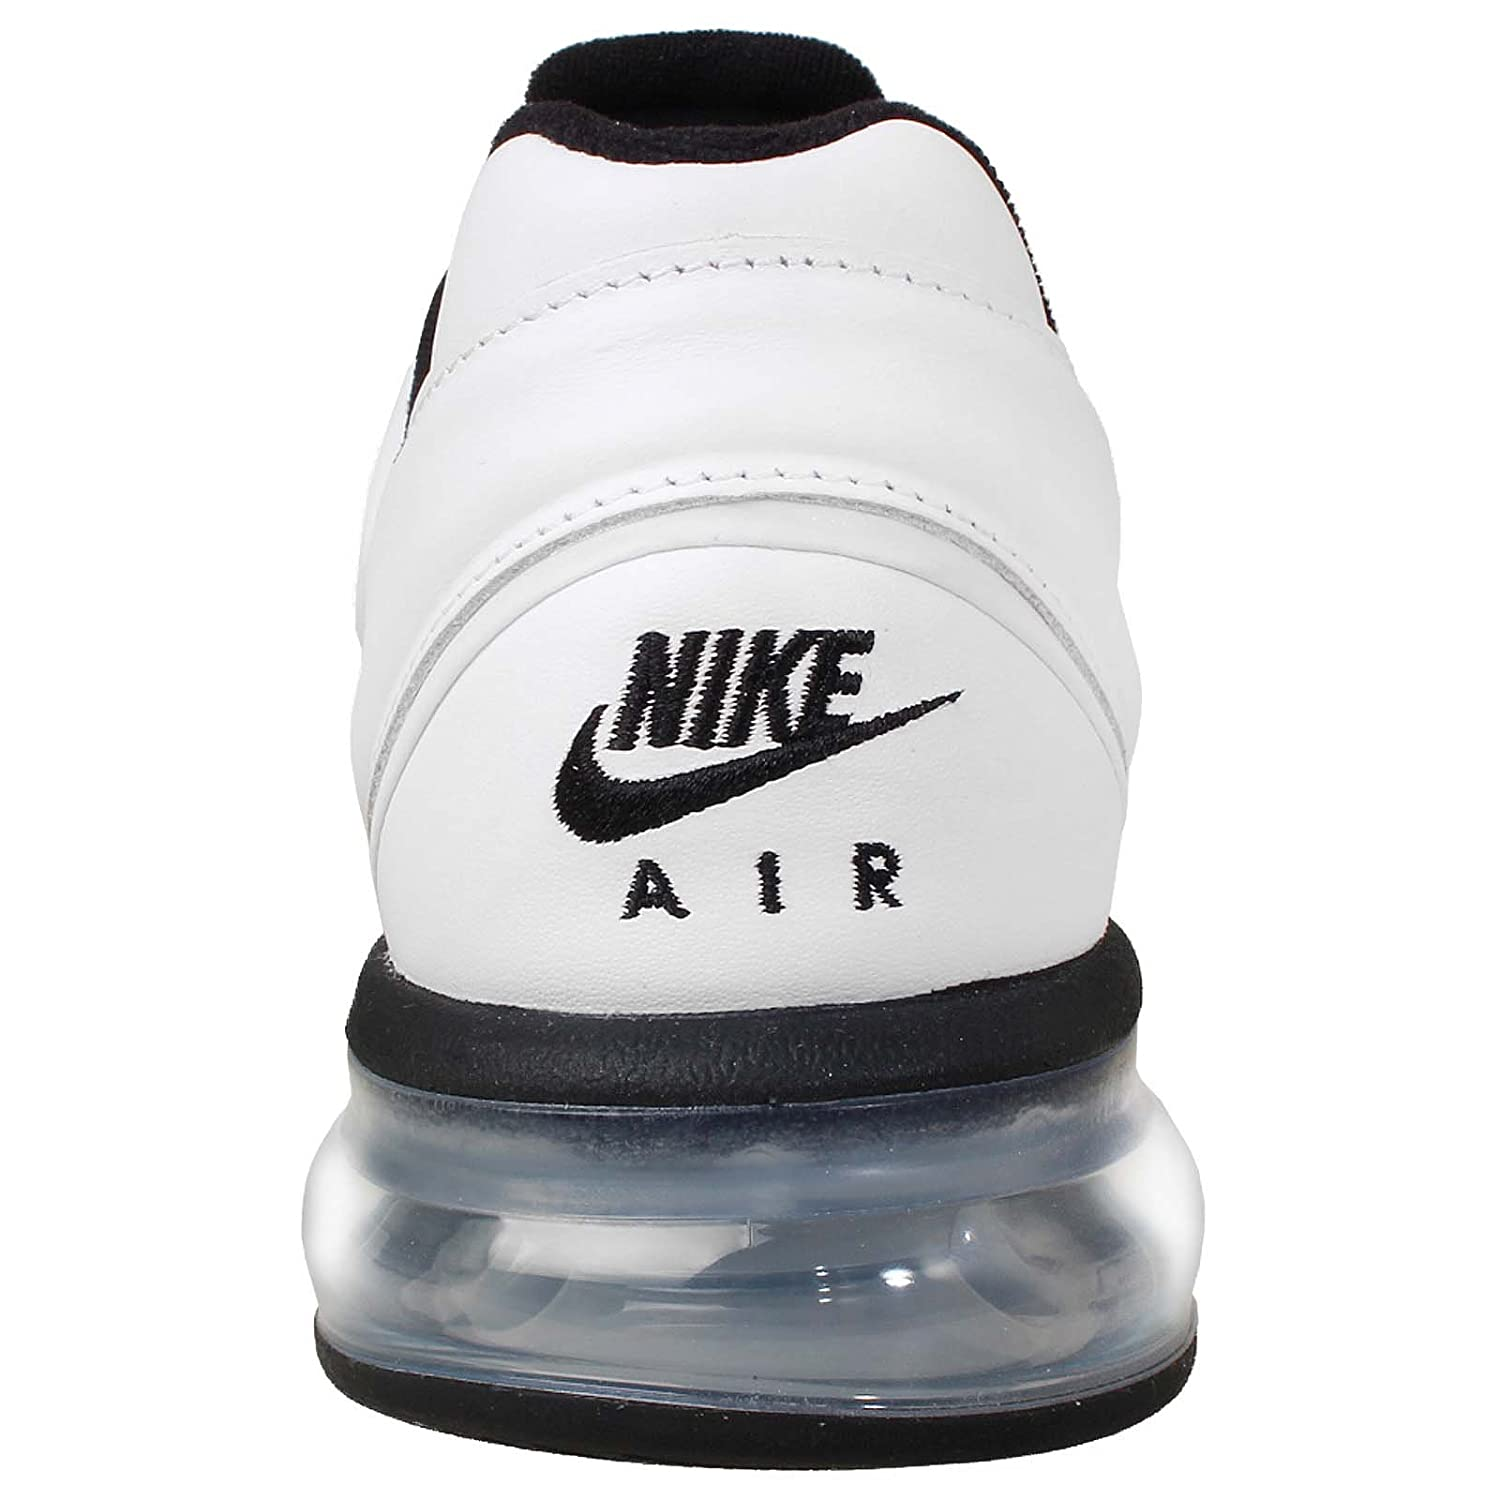 purchase cheap 66080 a4138 Nike Men s Air Max 2013 White, Black, Hyper Cobalt and Metallic Silver  Leather Running Shoes -7 UK India (41 EU)(8 US)  Buy Online at Low Prices  in India ...